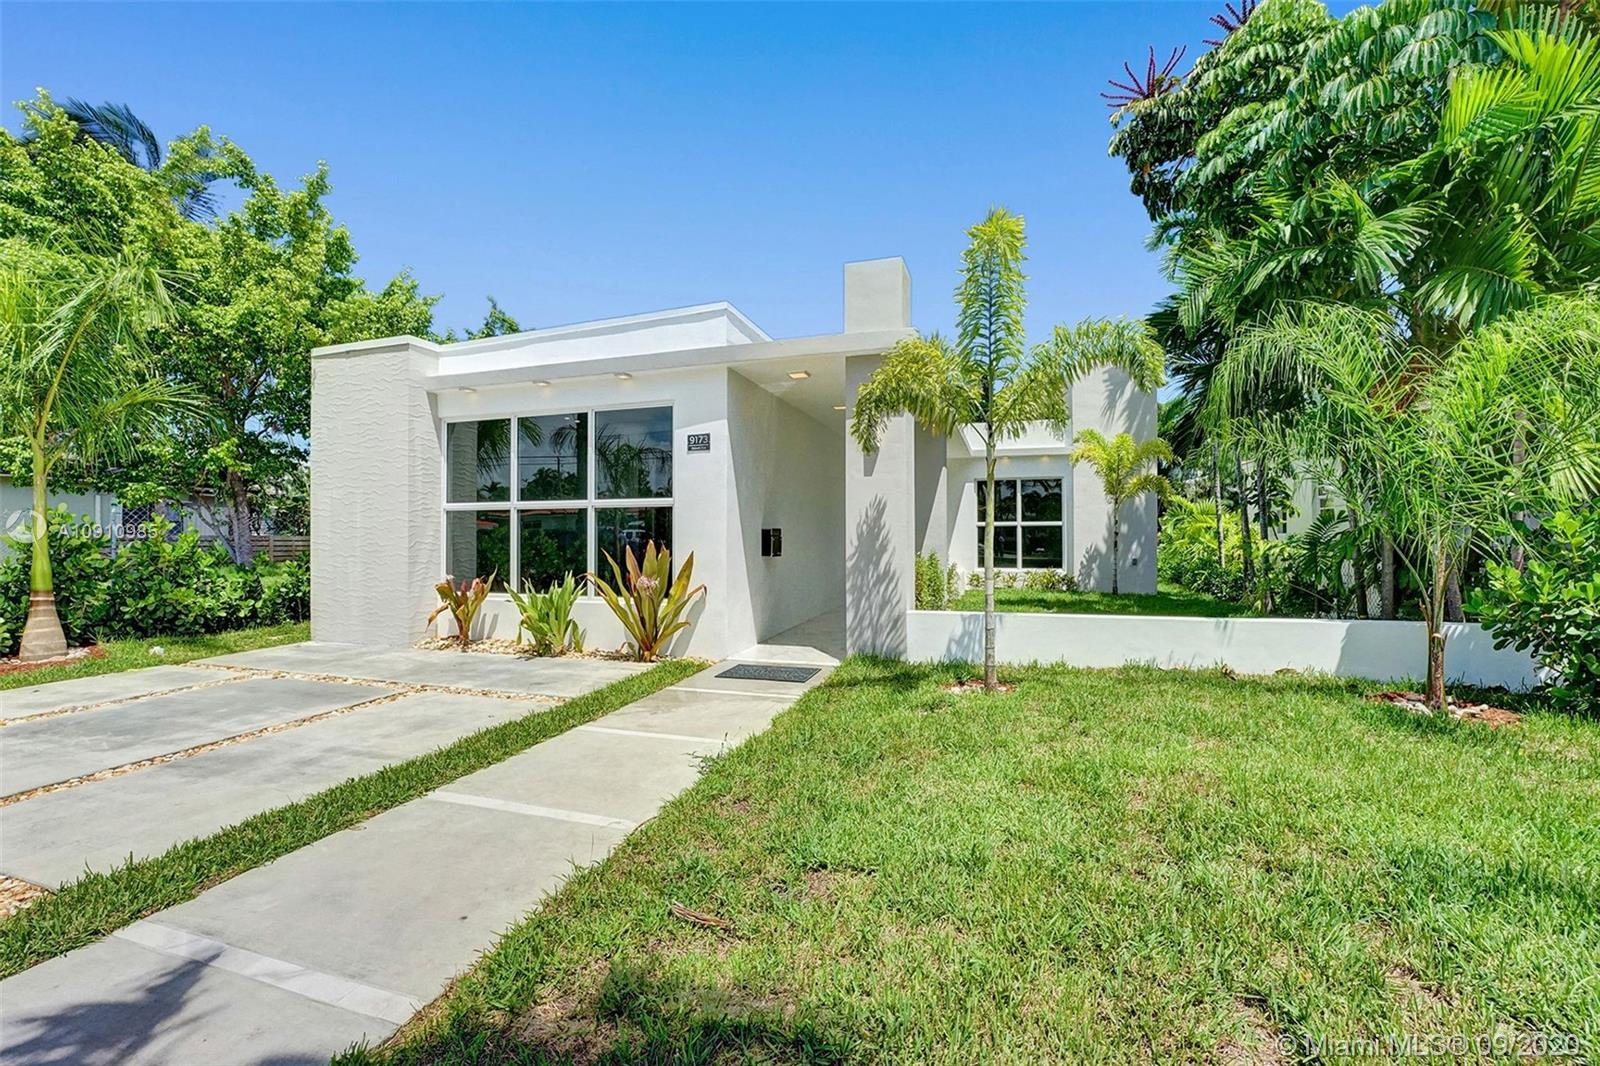 2000 sq. ft.!!!!! Beautifully remodeled house in Surfside!!! 3 bedrooms, 3 bathrooms, master with wa